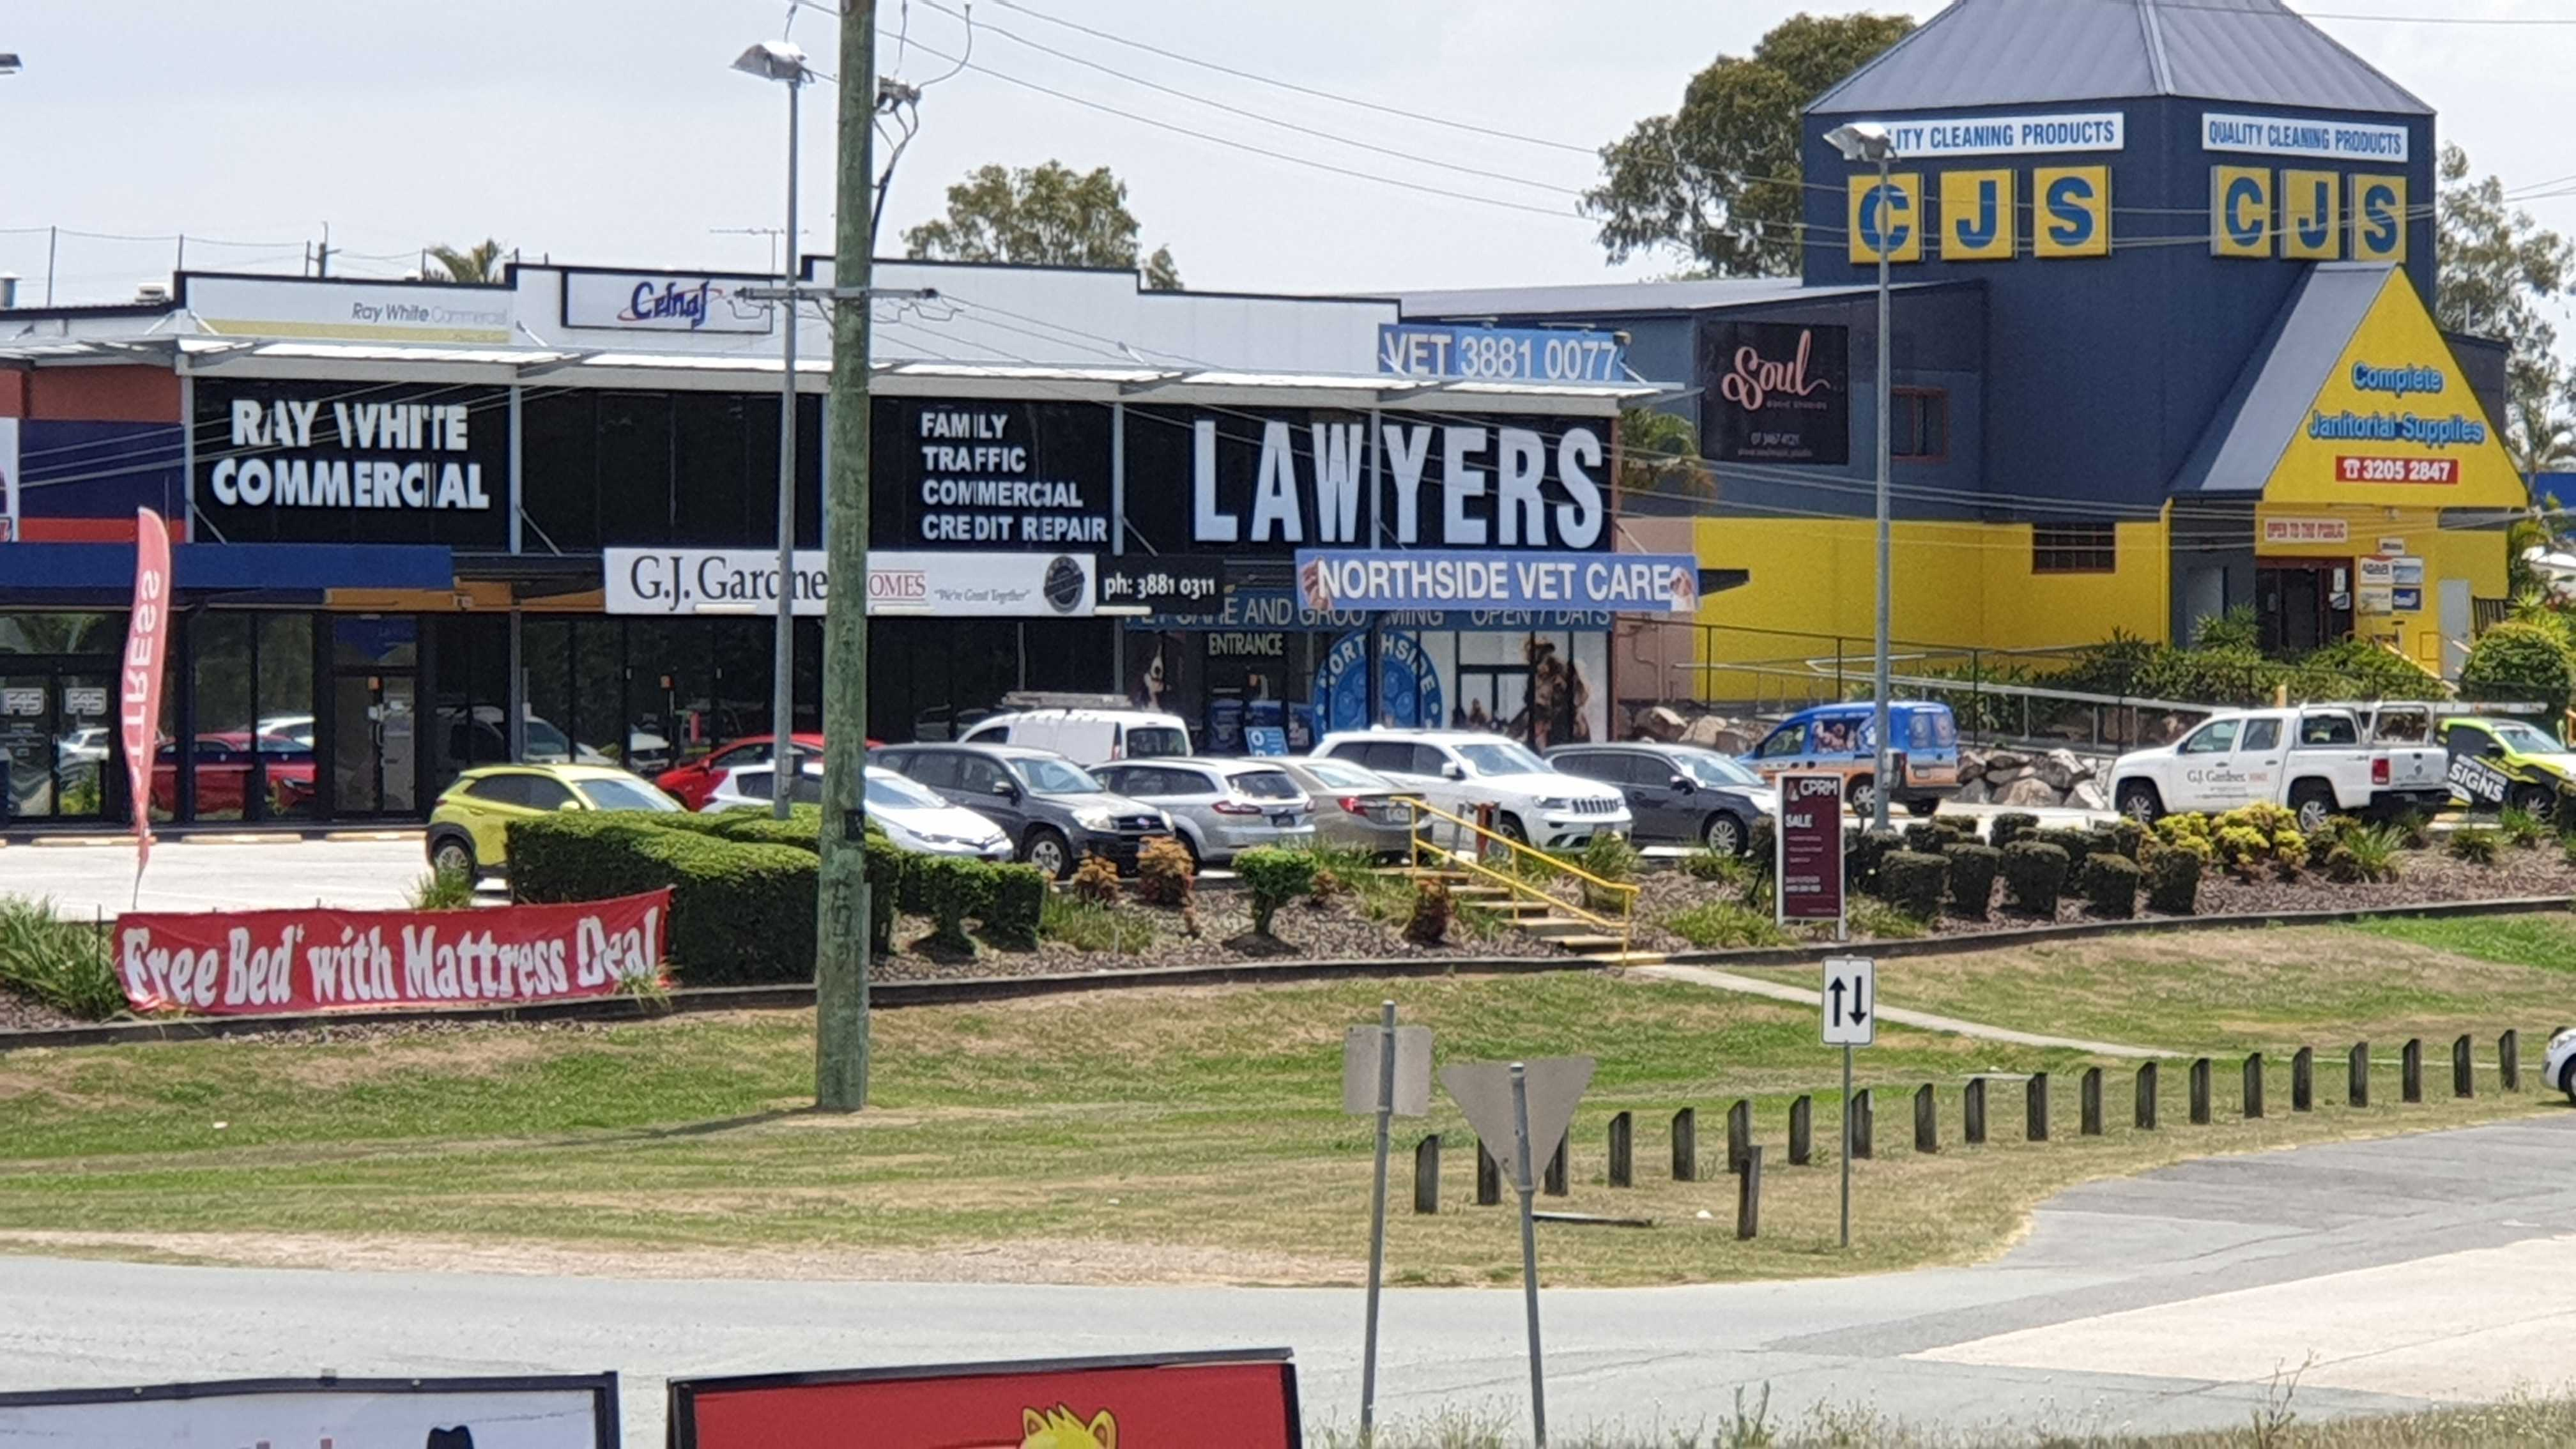 Big Lawyers Sign On Gympie Road Strathpine